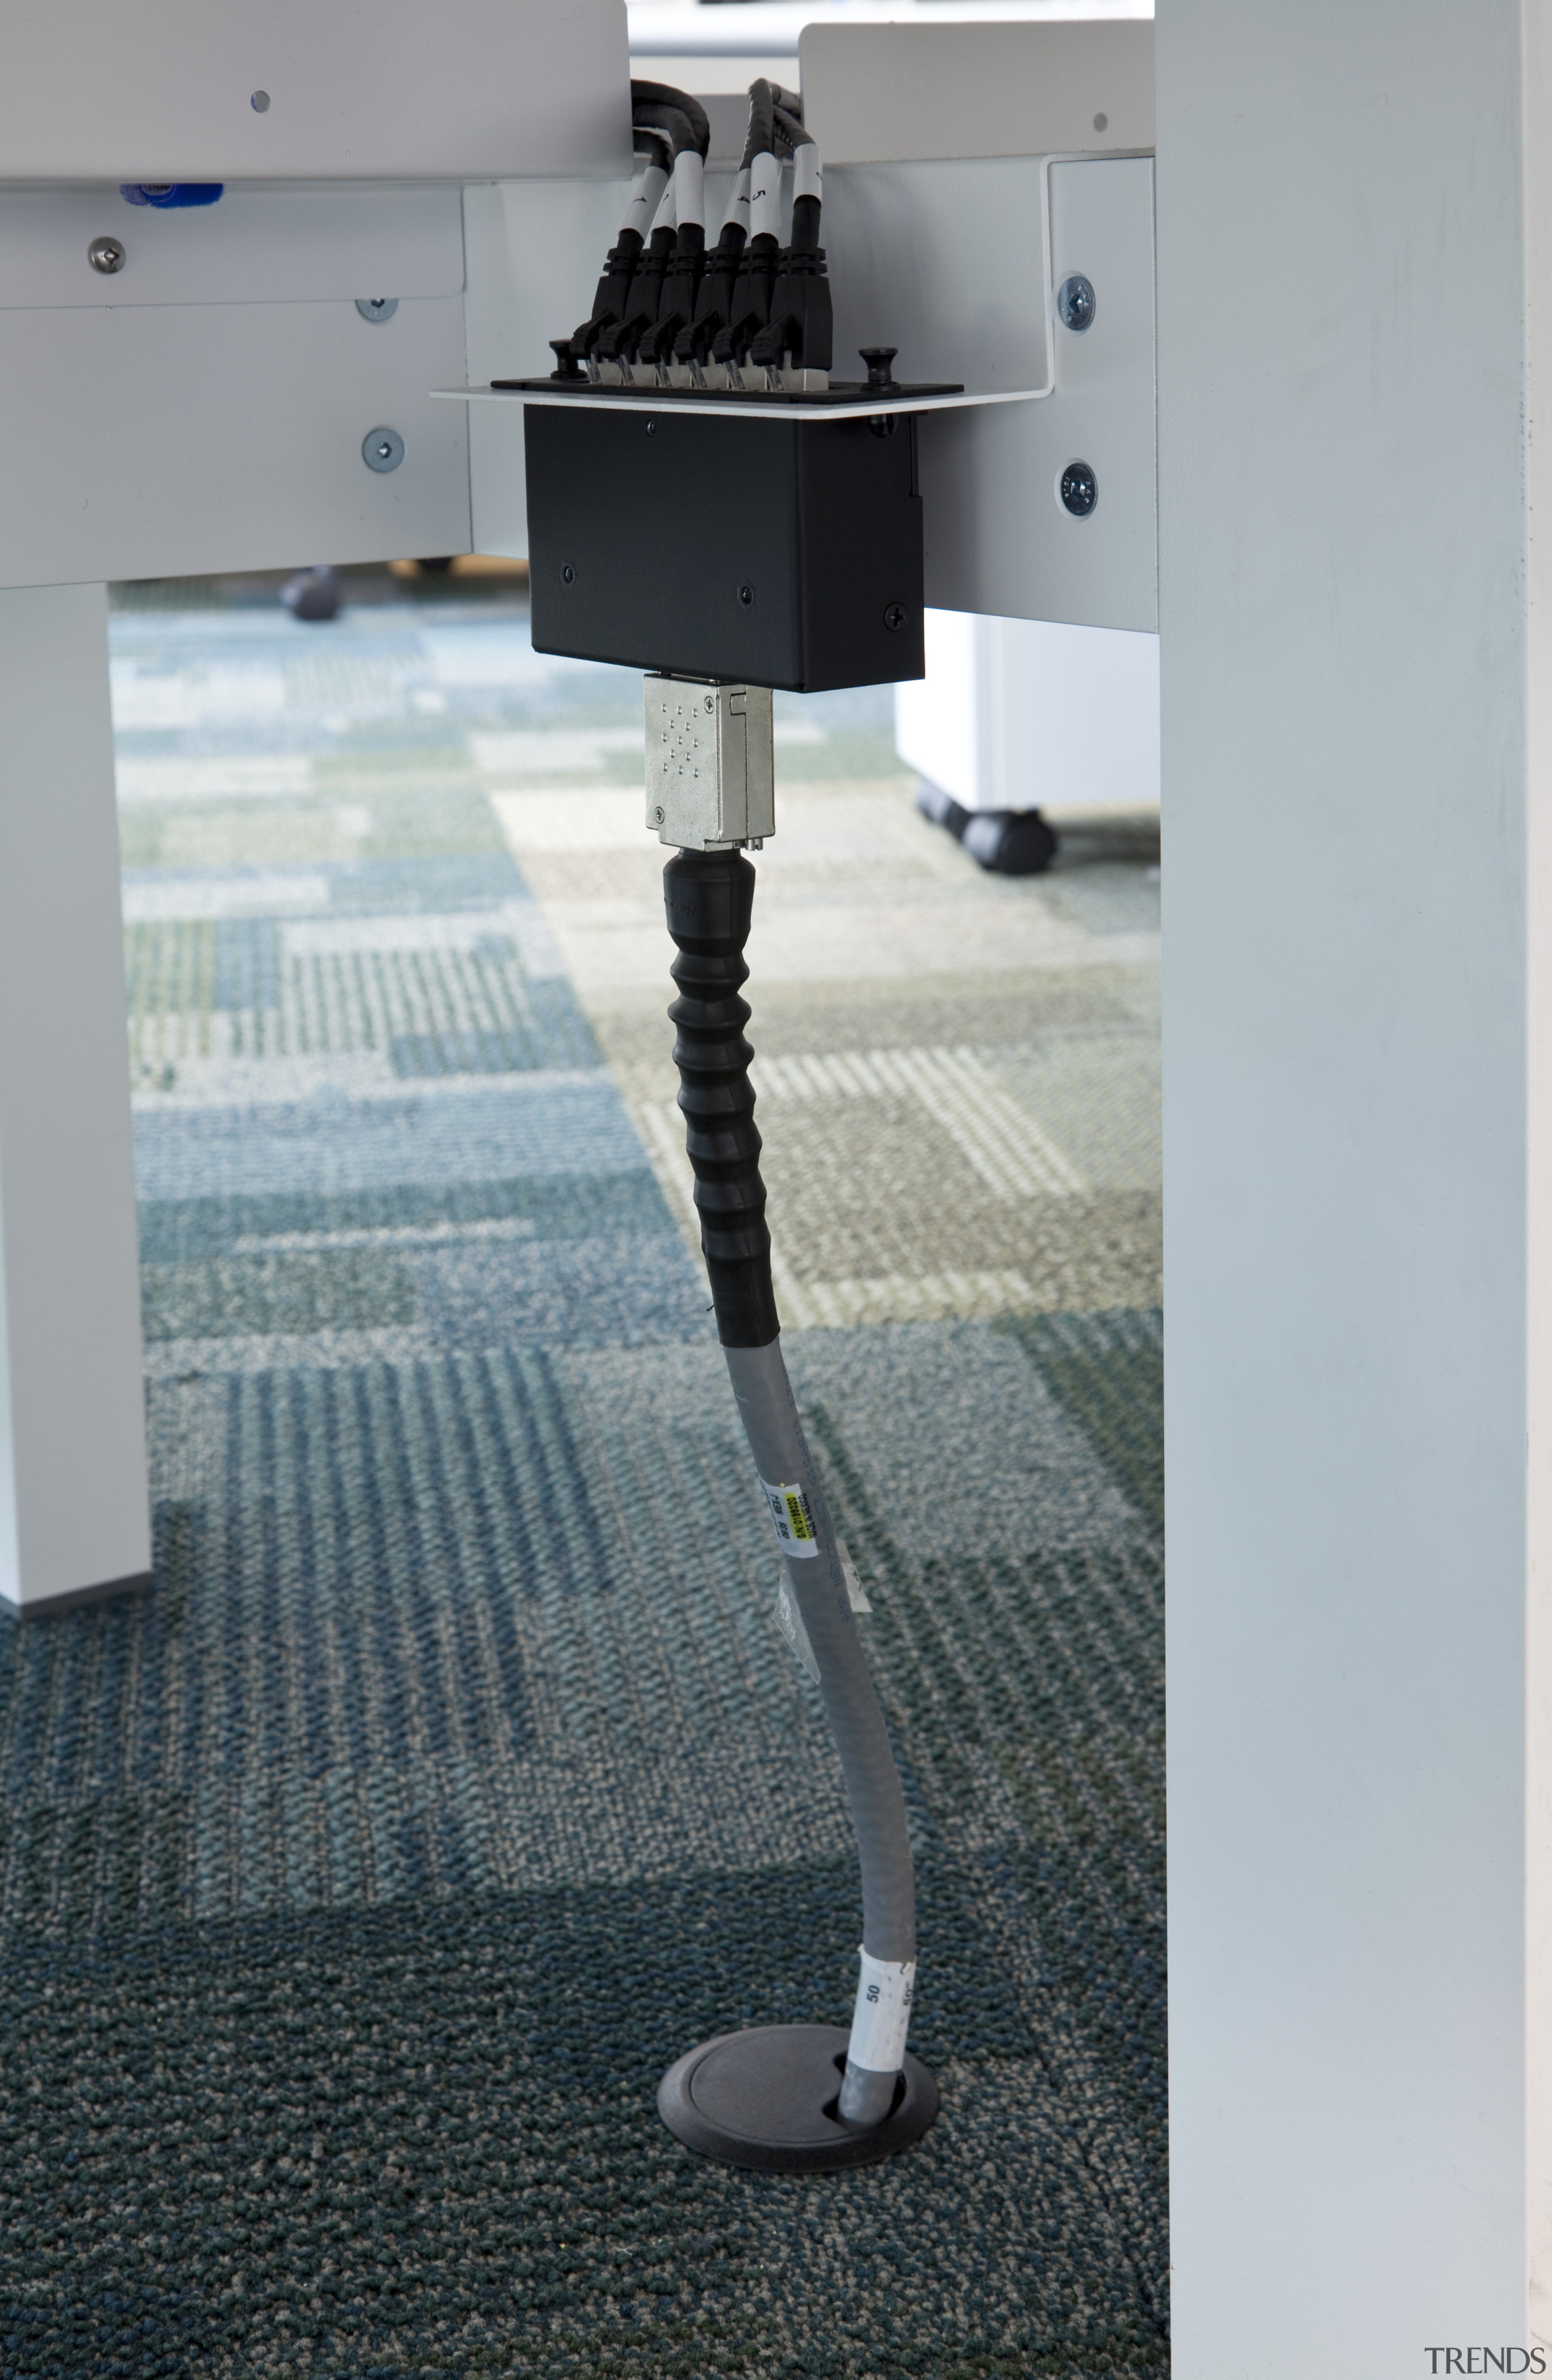 View of data communications system at Mercury Energy floor, flooring, product design, gray